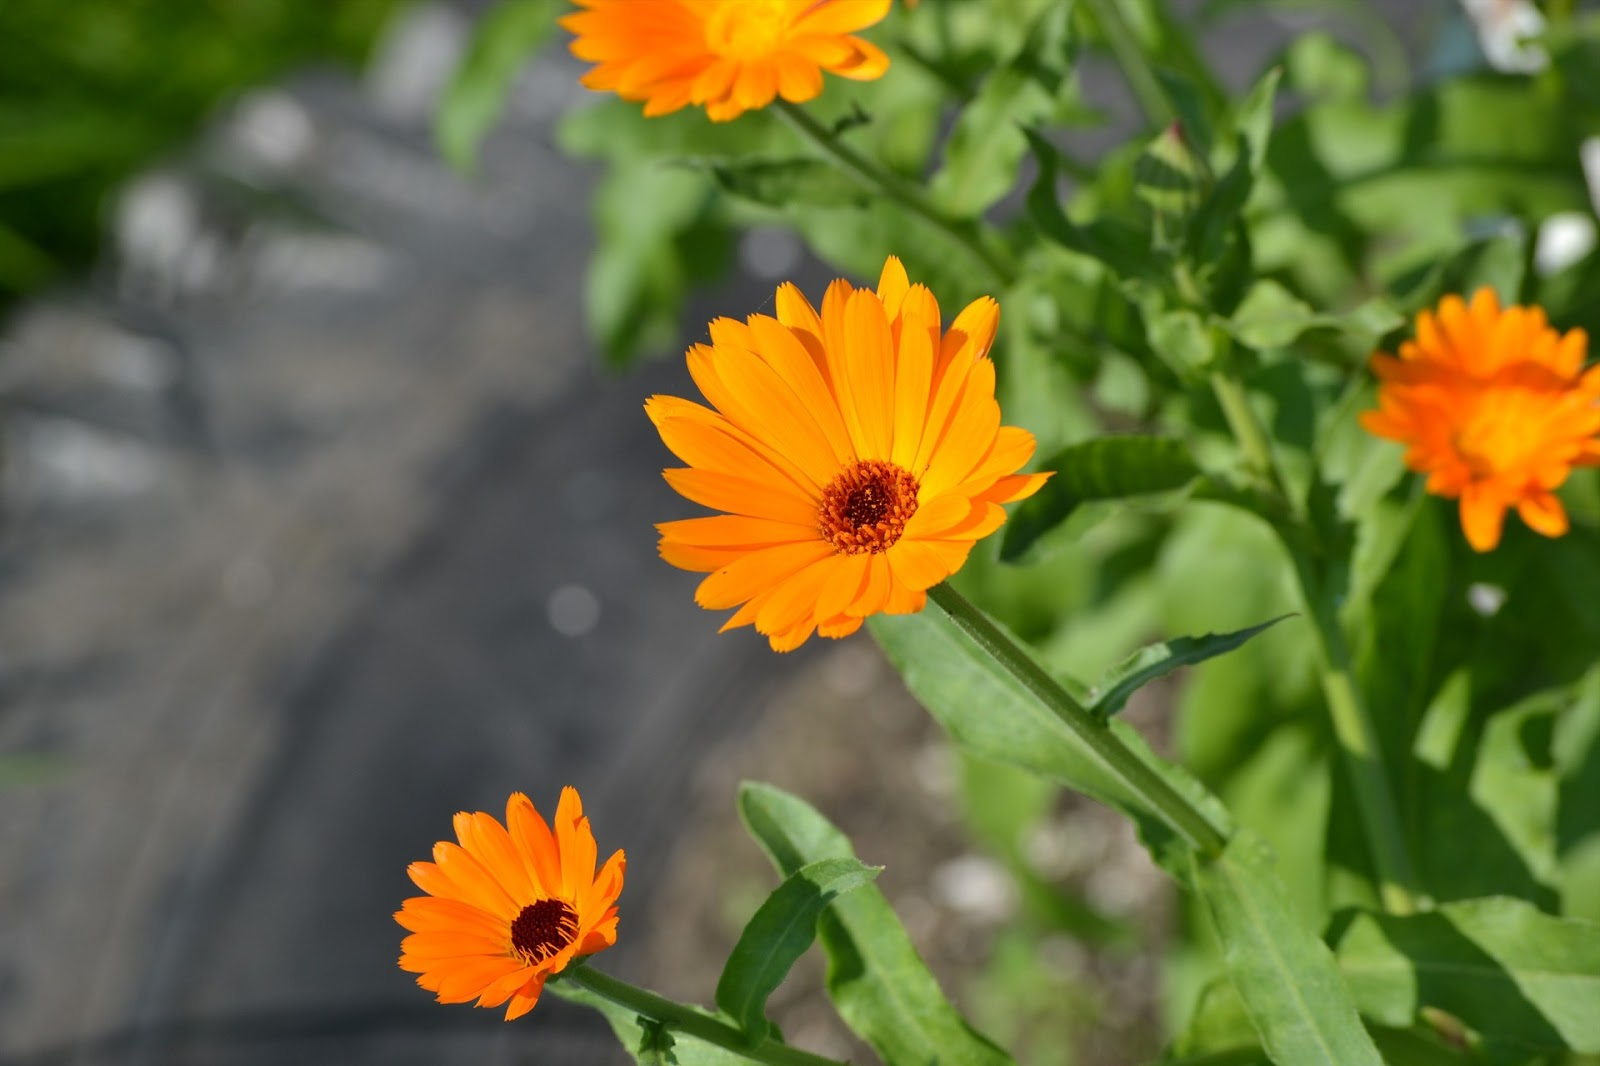 Janies pocono mountain garden five annual flowers that dont mind also known as pot marigold it is a pretty flower with bright yellow or orange petals it tolerates full sun to shade and grows 1 to 3 feet in height izmirmasajfo